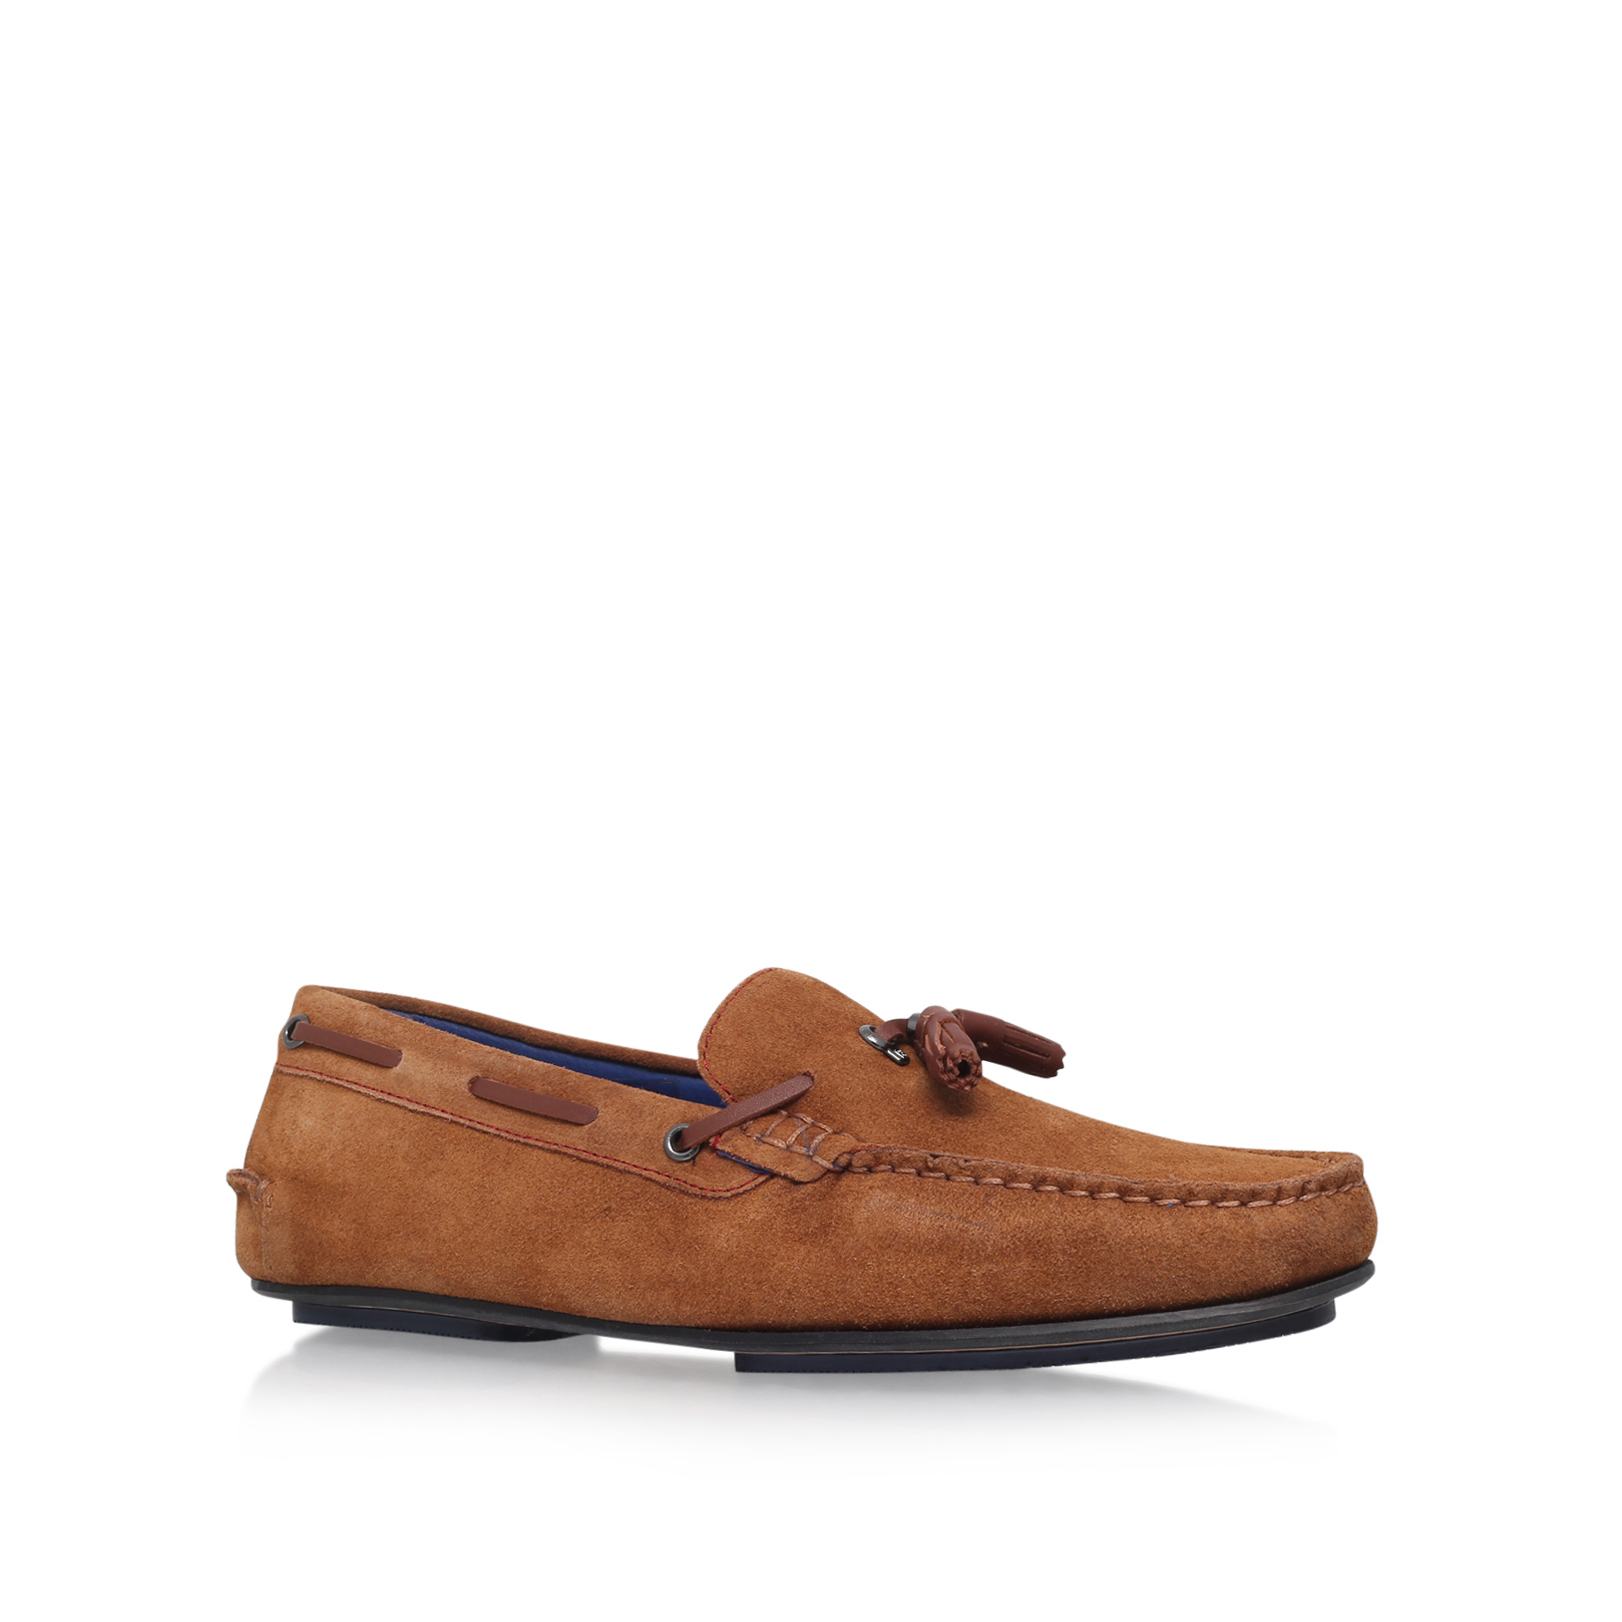 TASSLE FRONT LOAFER